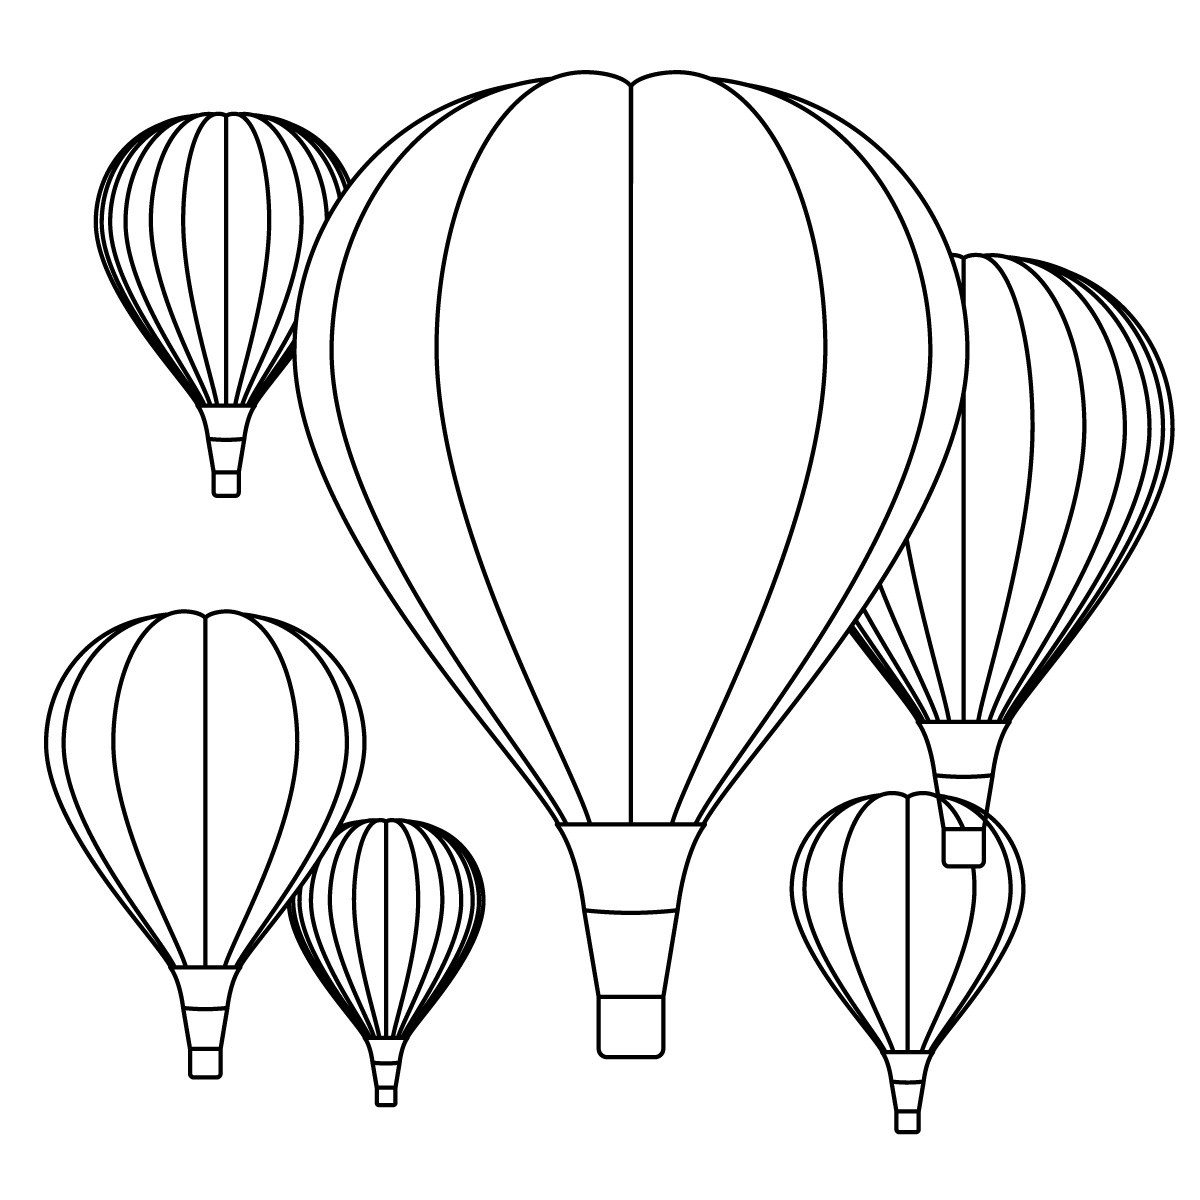 Hot Air Balloon Coloring Pages Download Of Fresh Hot Air Balloons Coloring Pages Collection to Print